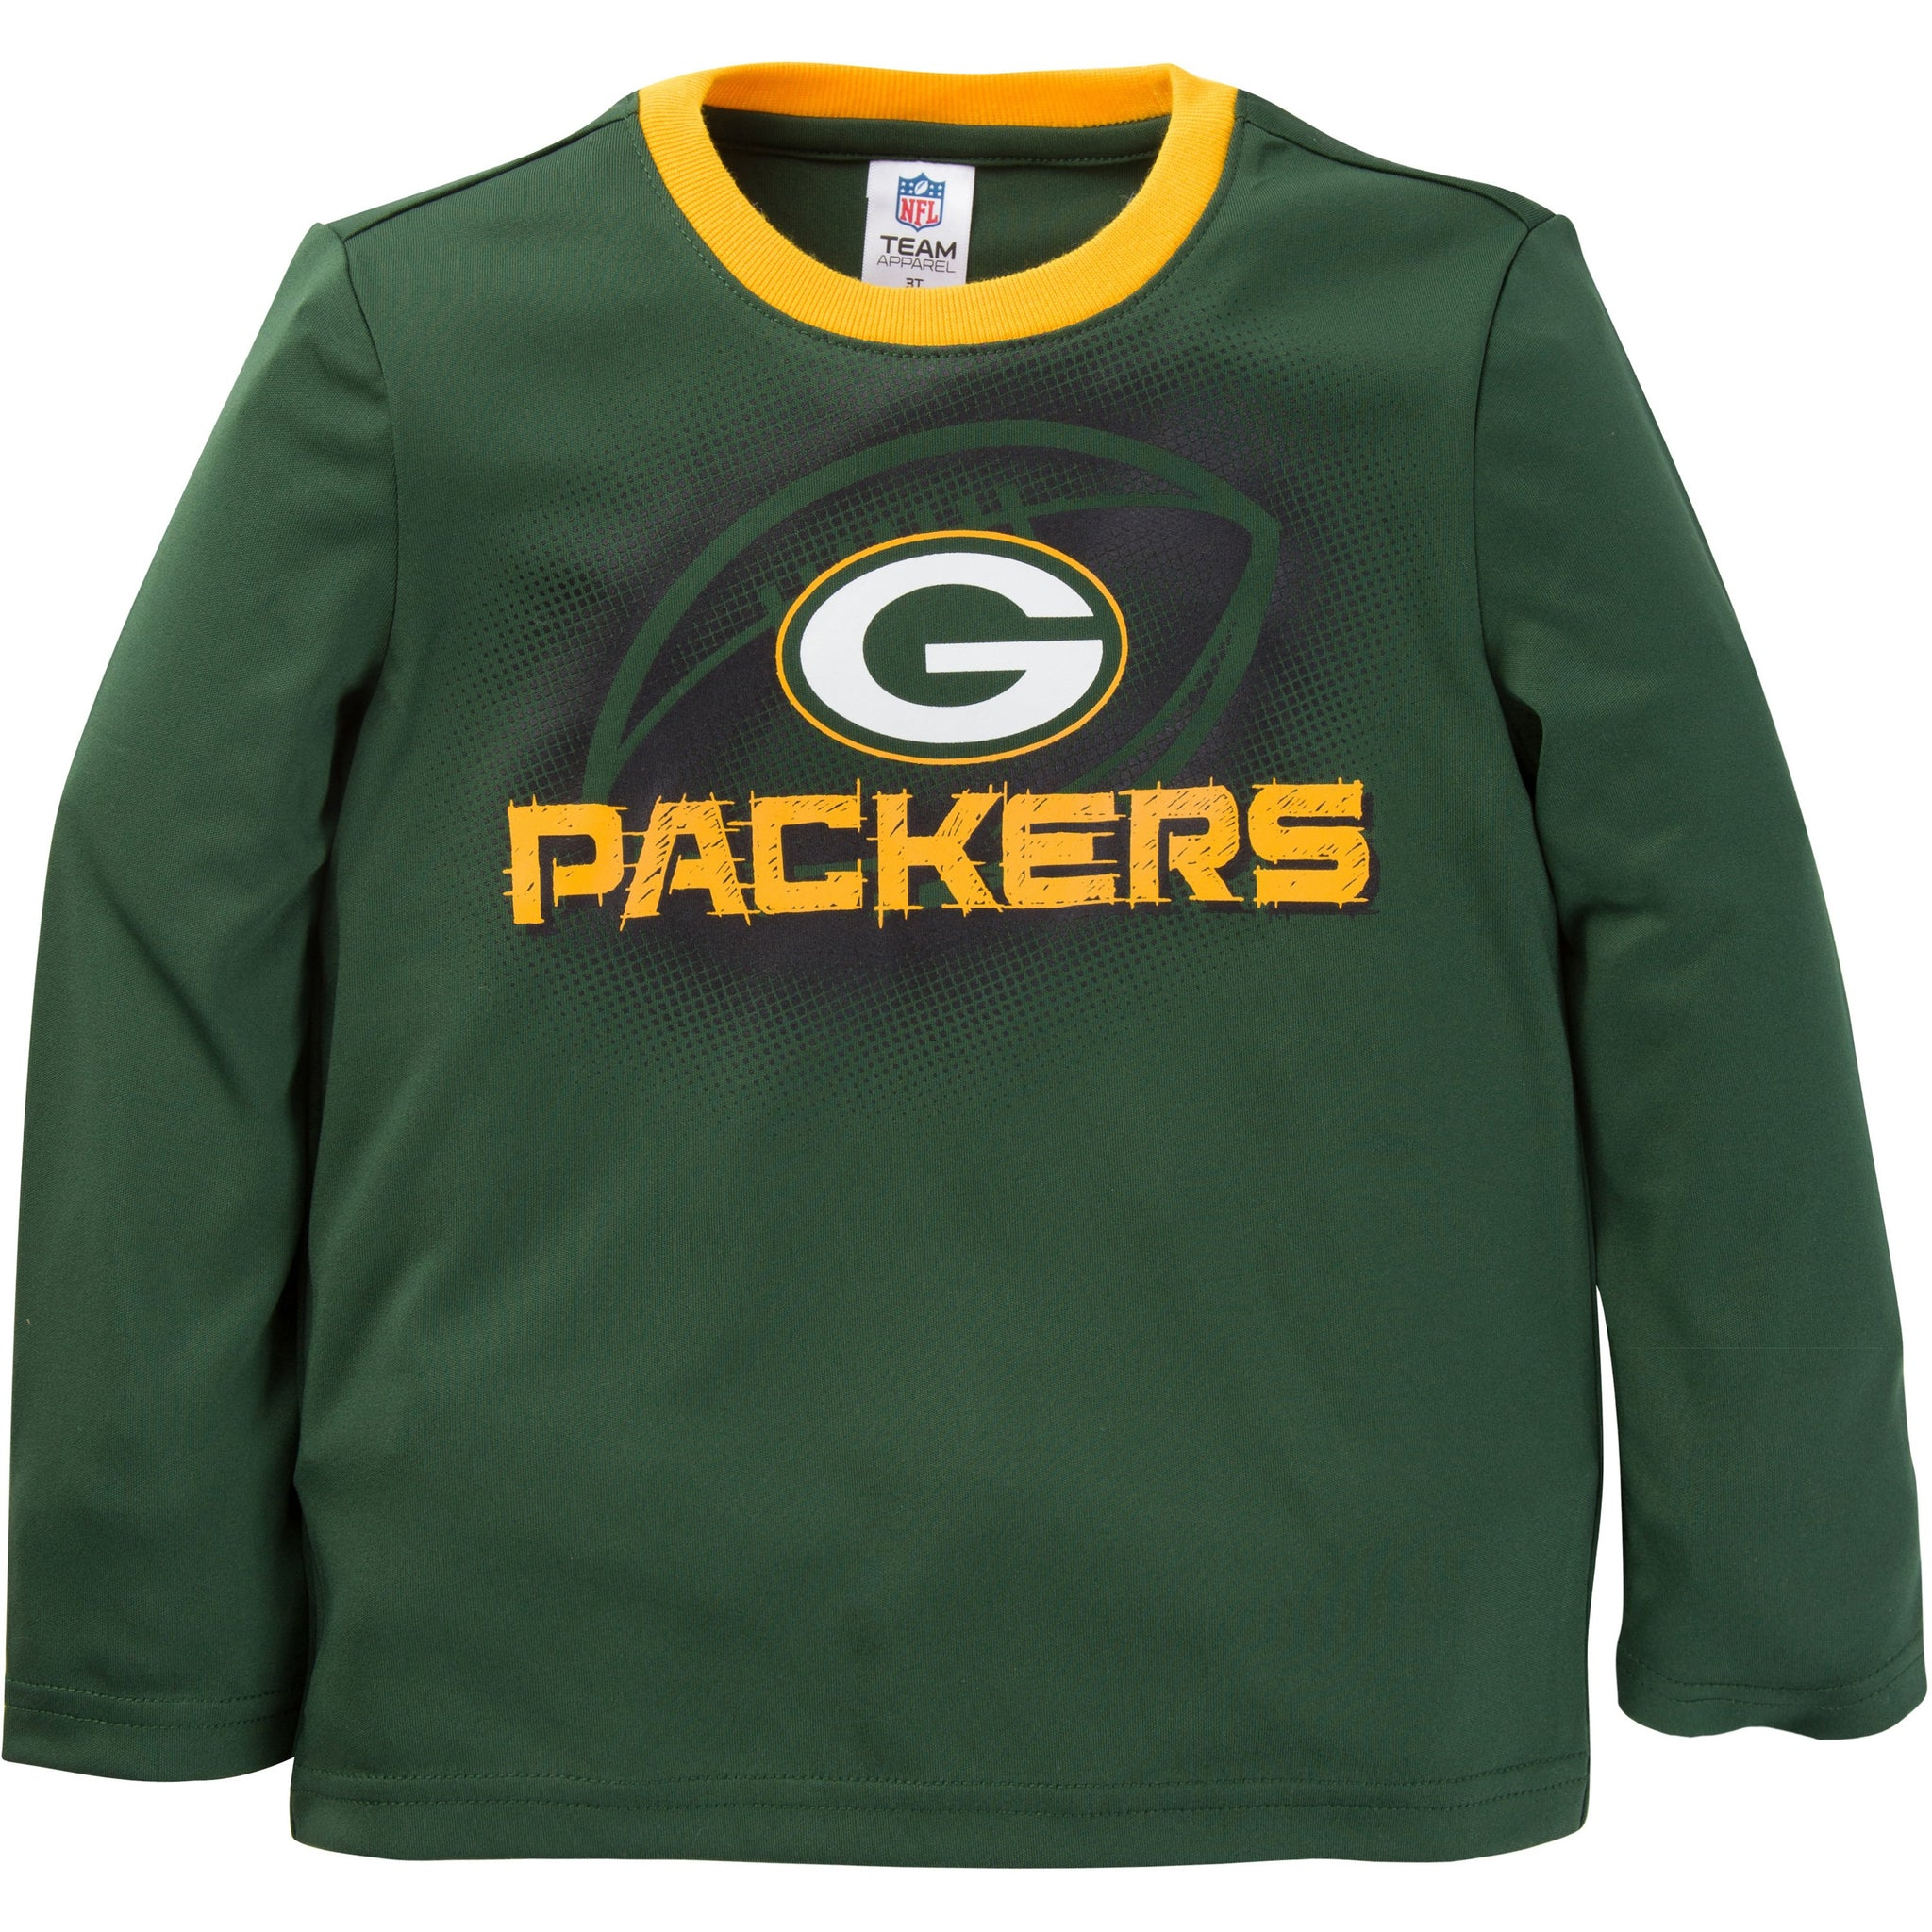 NFL Green Bay Packers Toddler Boys Long Sleeve Performance Tee Shirt